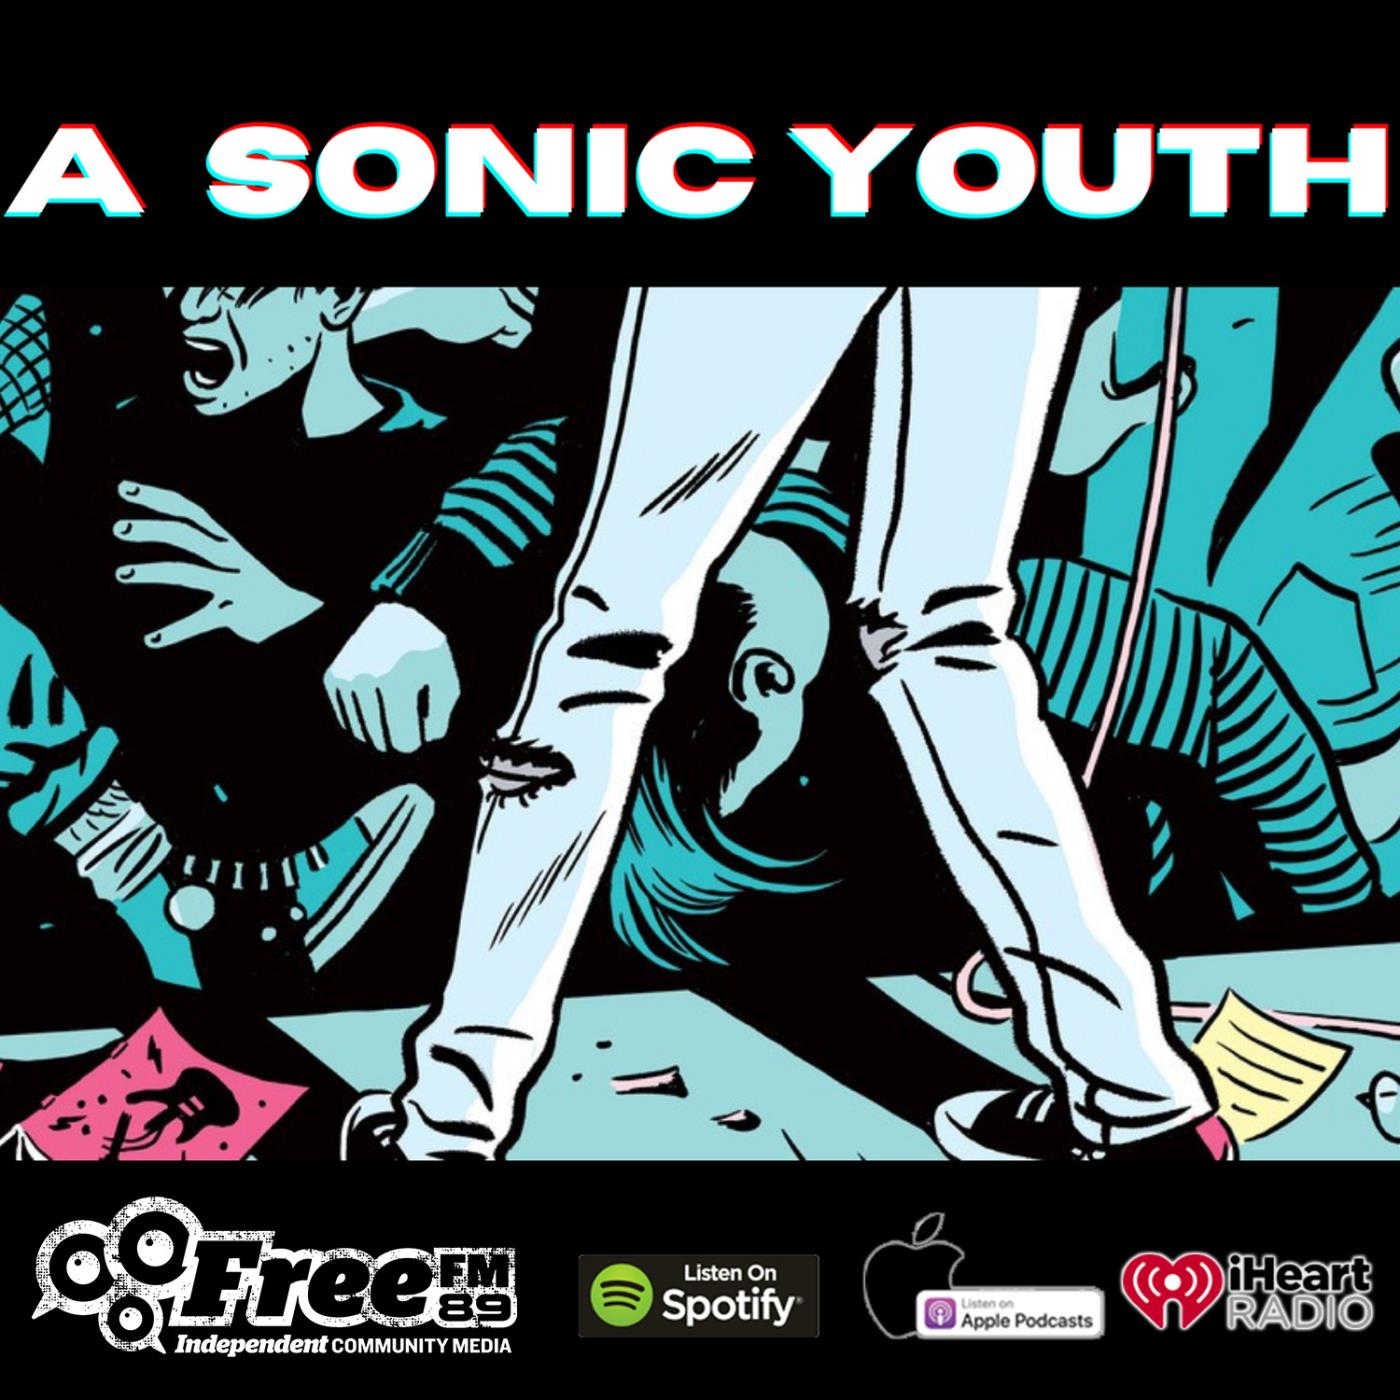 A Sonic Youth